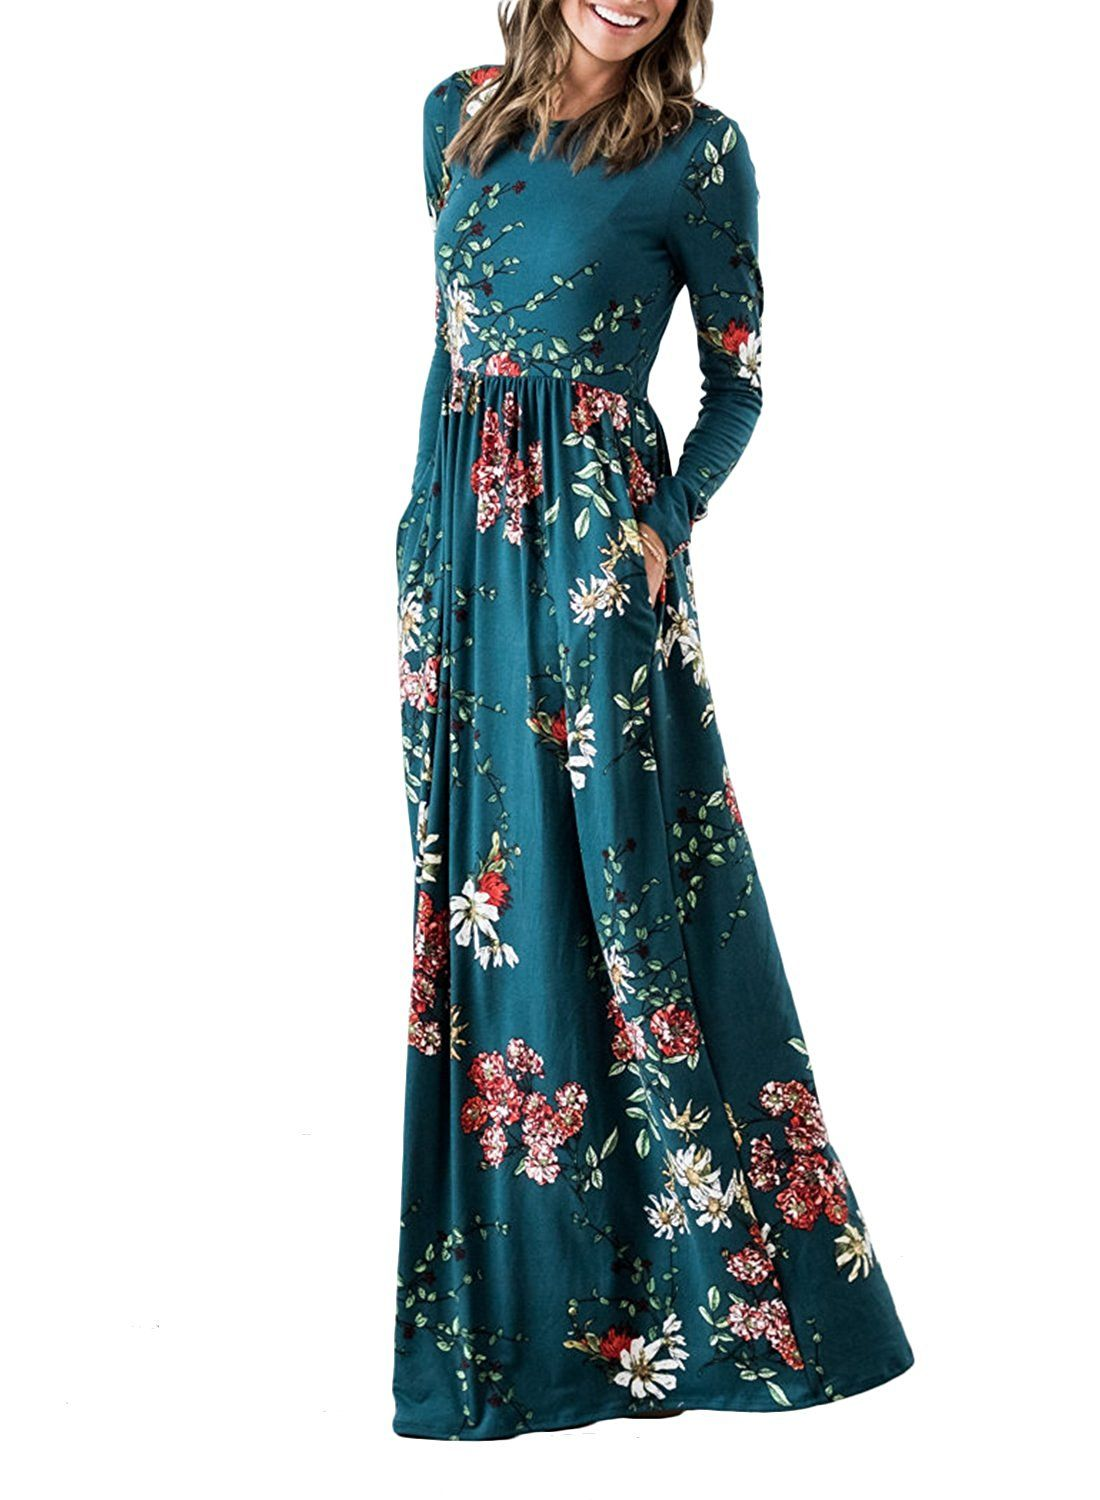 e6dc32aa8f4 ZESICA Women s Floral Print Long Sleeve Pockets Empire Waist Pleated Long  Maxi Dress at Amazon Women s Clothing store